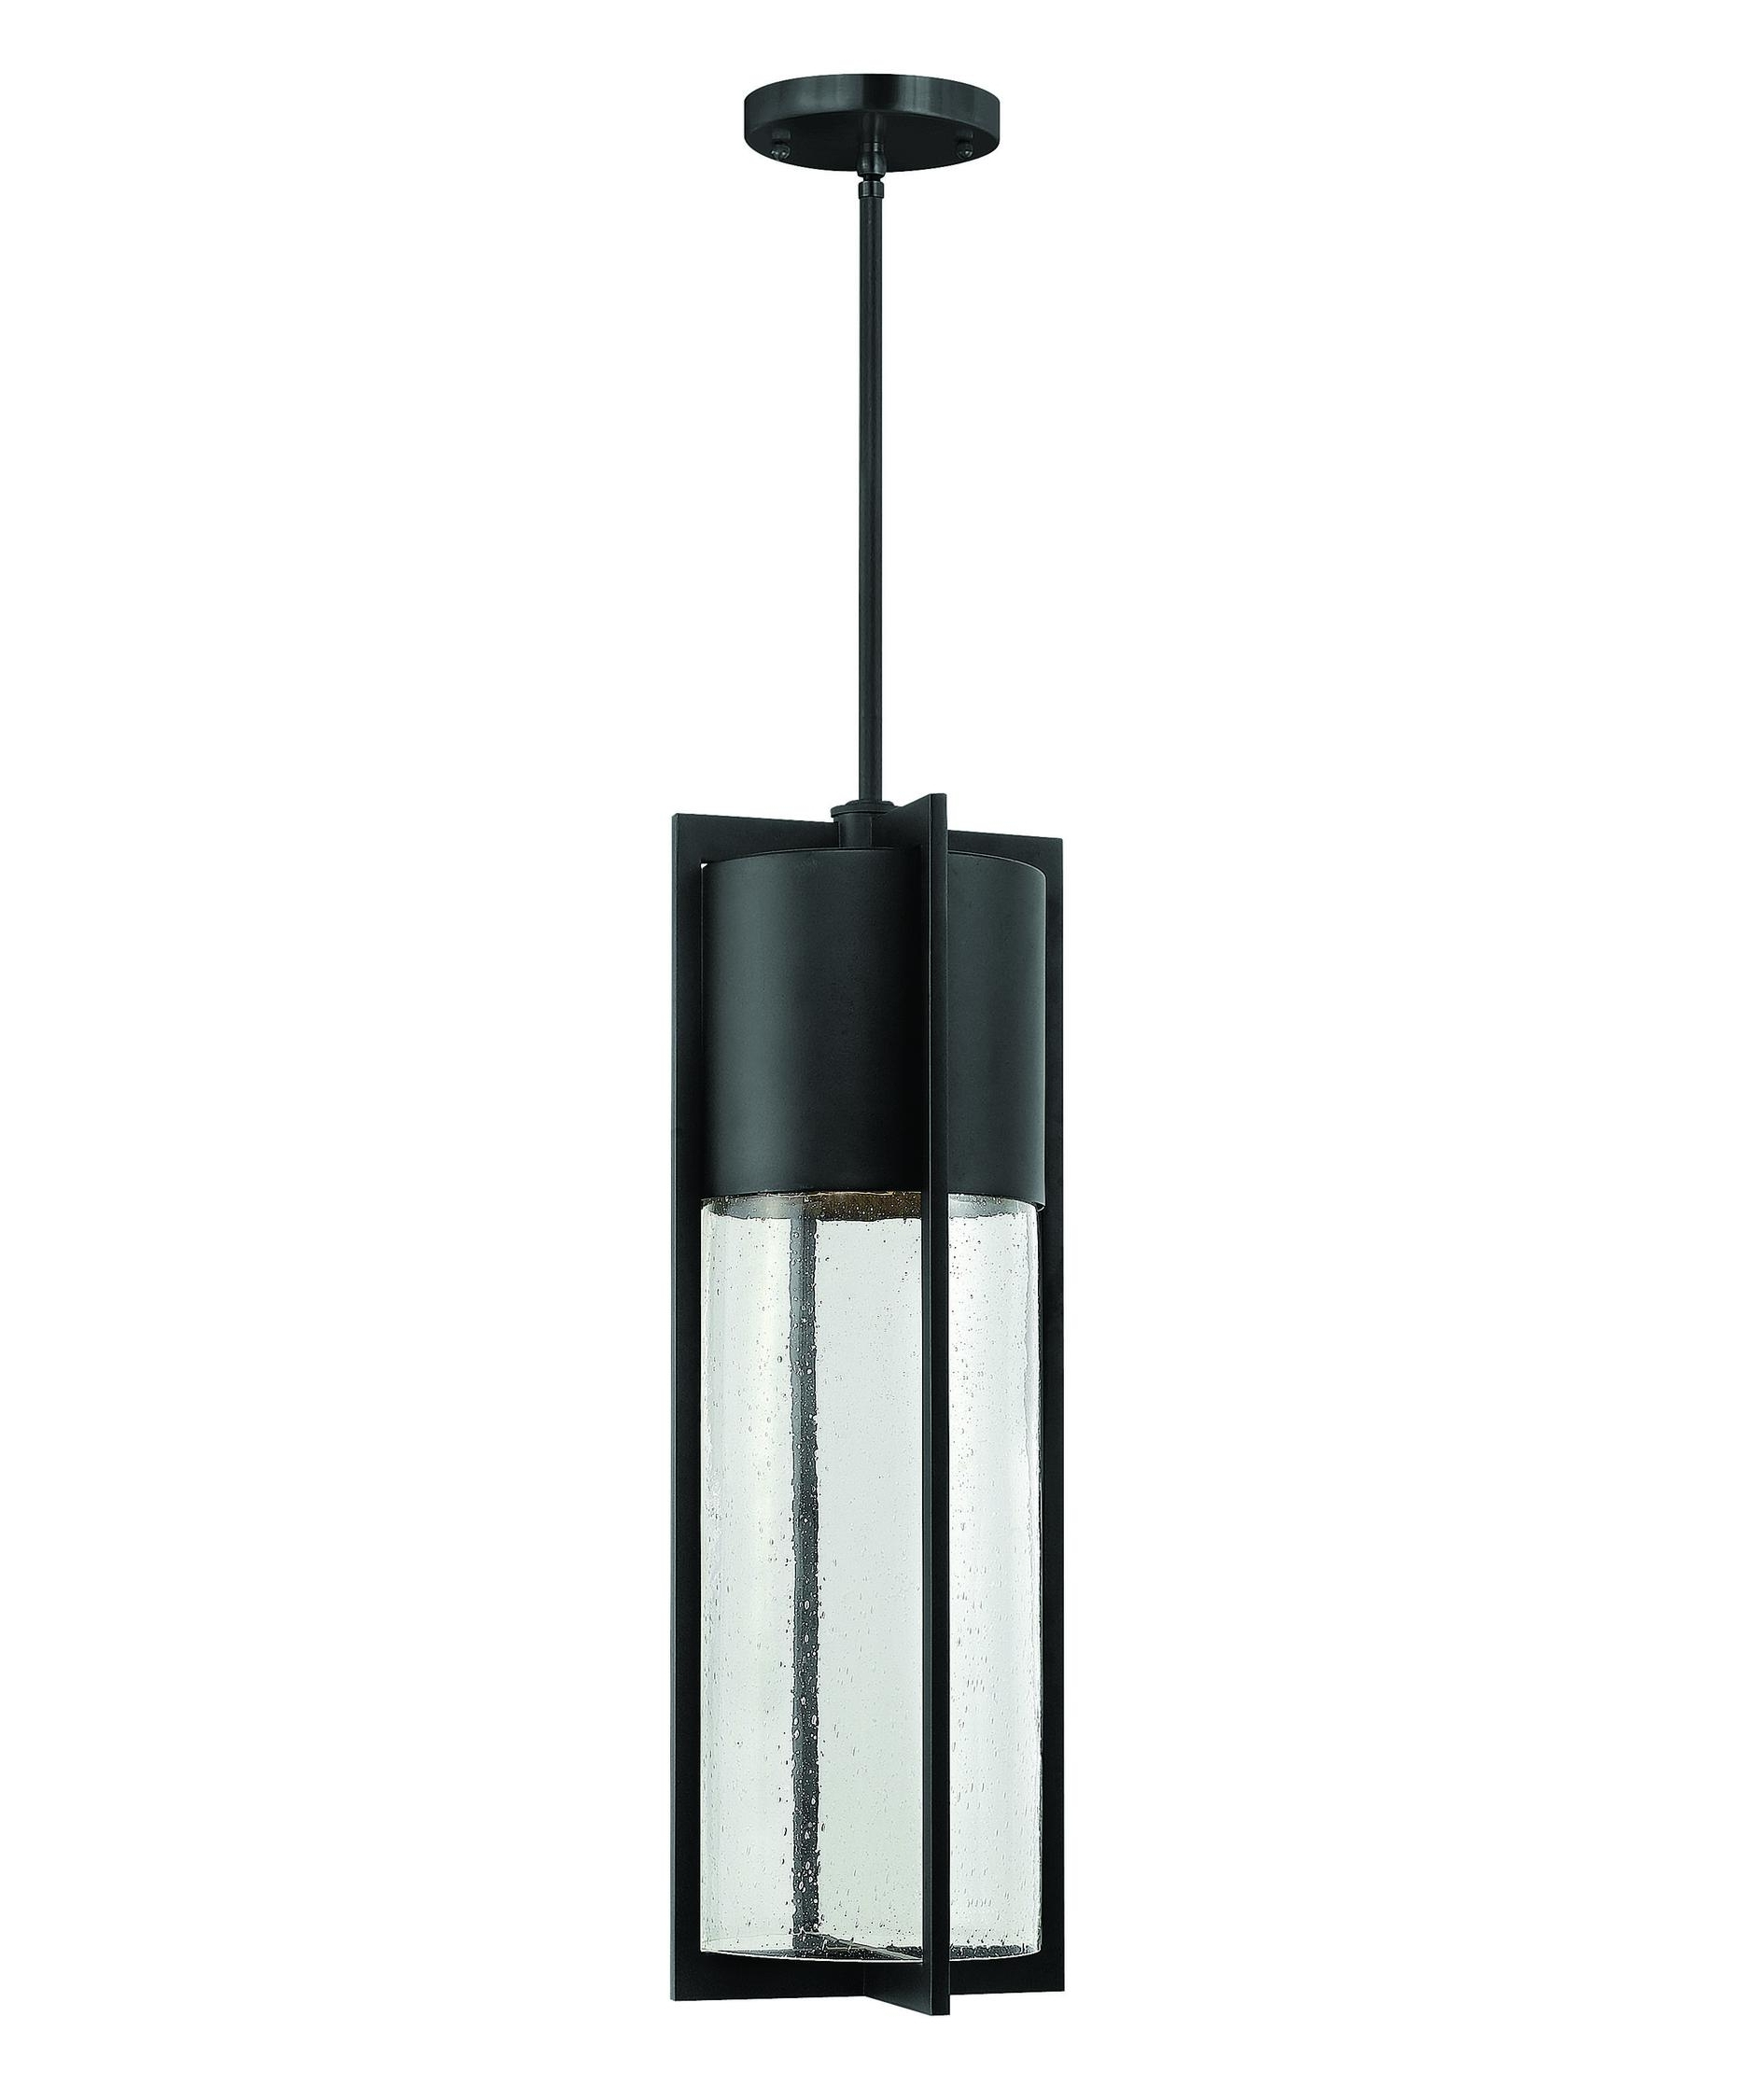 Hinkley Lighting 1328 Shelter 8 Inch Wide 1 Light Outdoor Hanging Within Most Up To Date Modern Latern Hinkley Lighting (View 8 of 20)